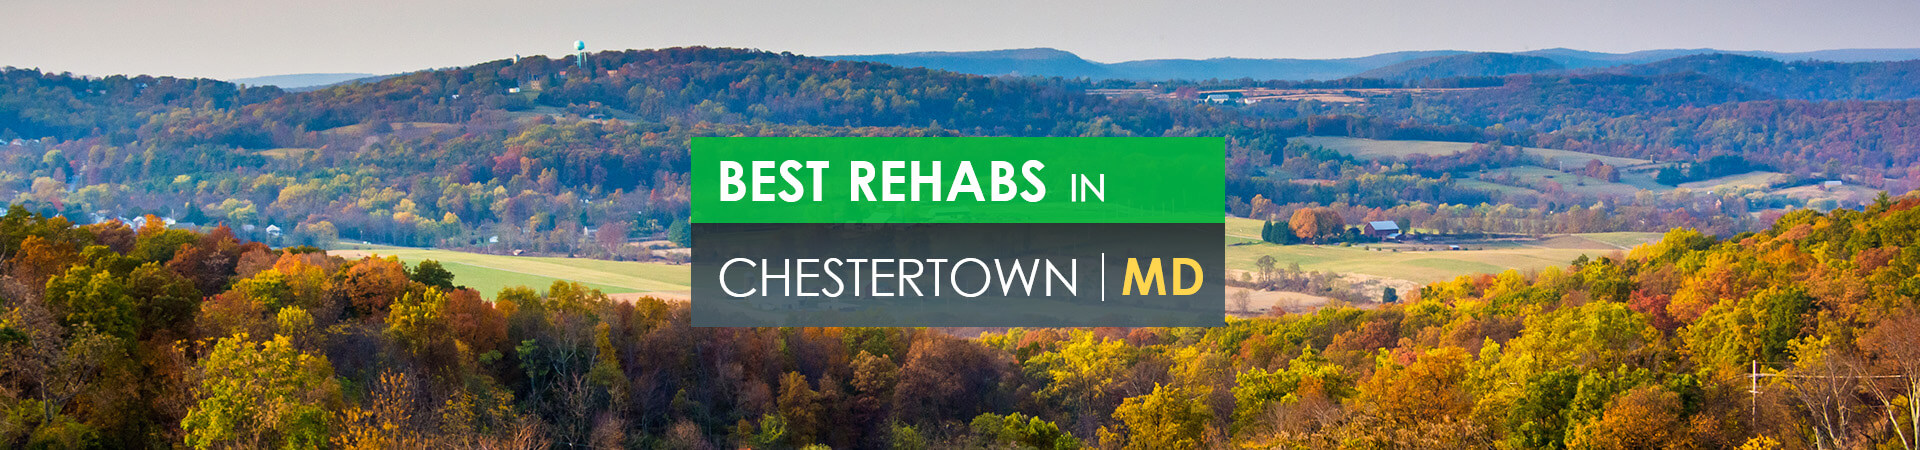 Best rehabs in Chestertown, MD